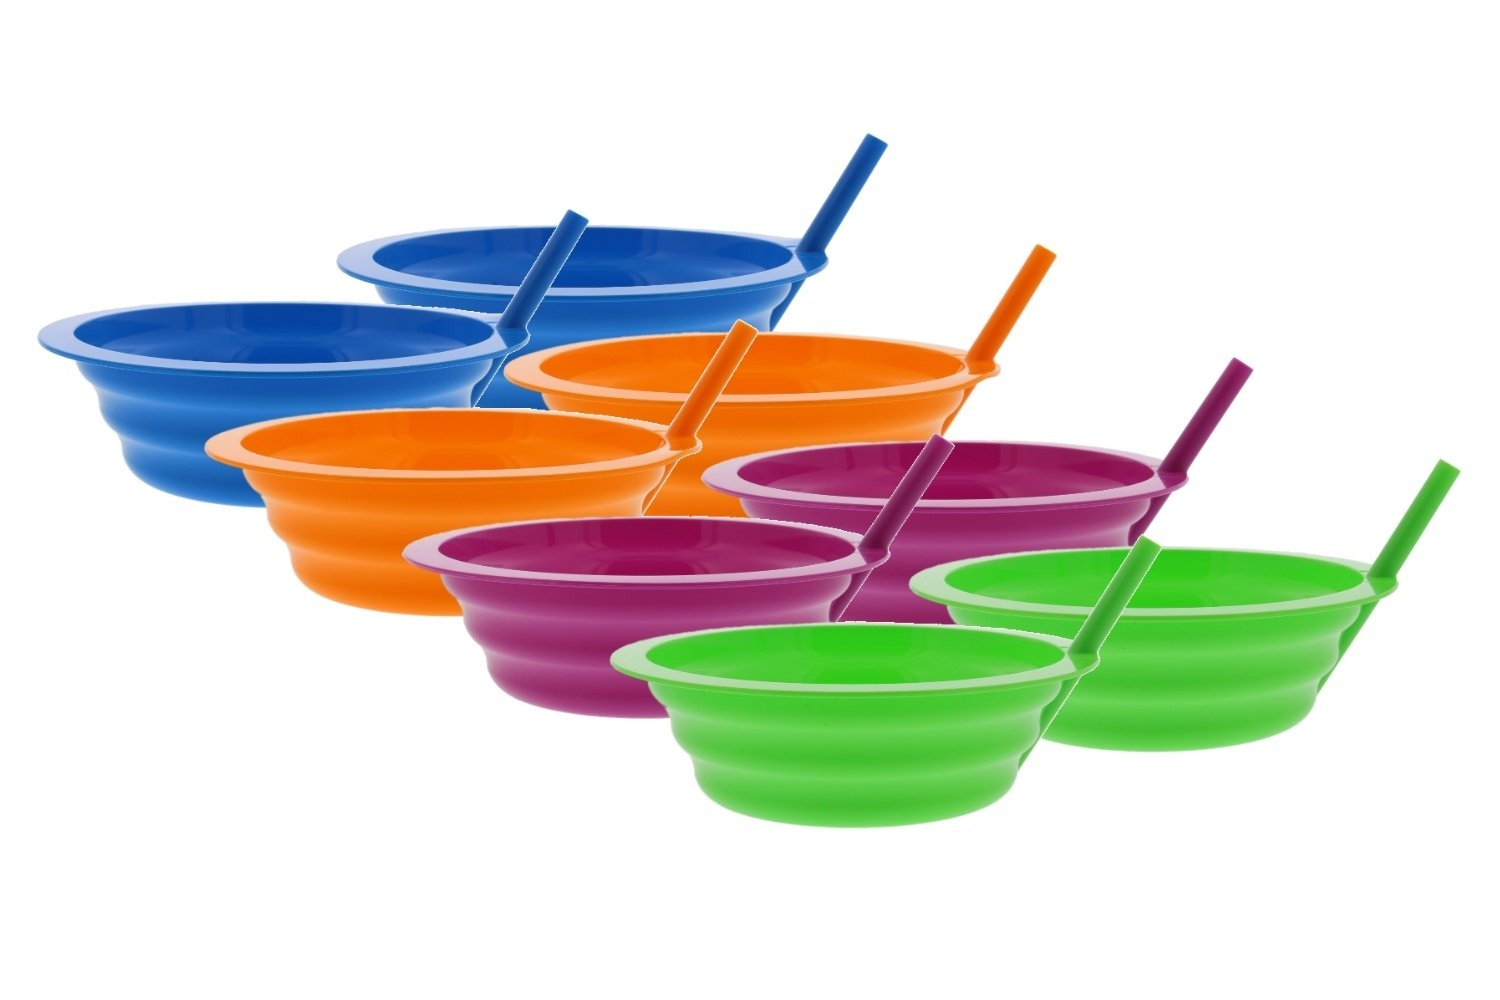 最低価格の 矢印sip-a-bowl with Built in in Straw、22オンス with、ブルー、ピンク、グリーン Built、オレンジ( 8パック) B079LT39DH, HEART OF WINE:848ed8e4 --- beyonddefeat.com